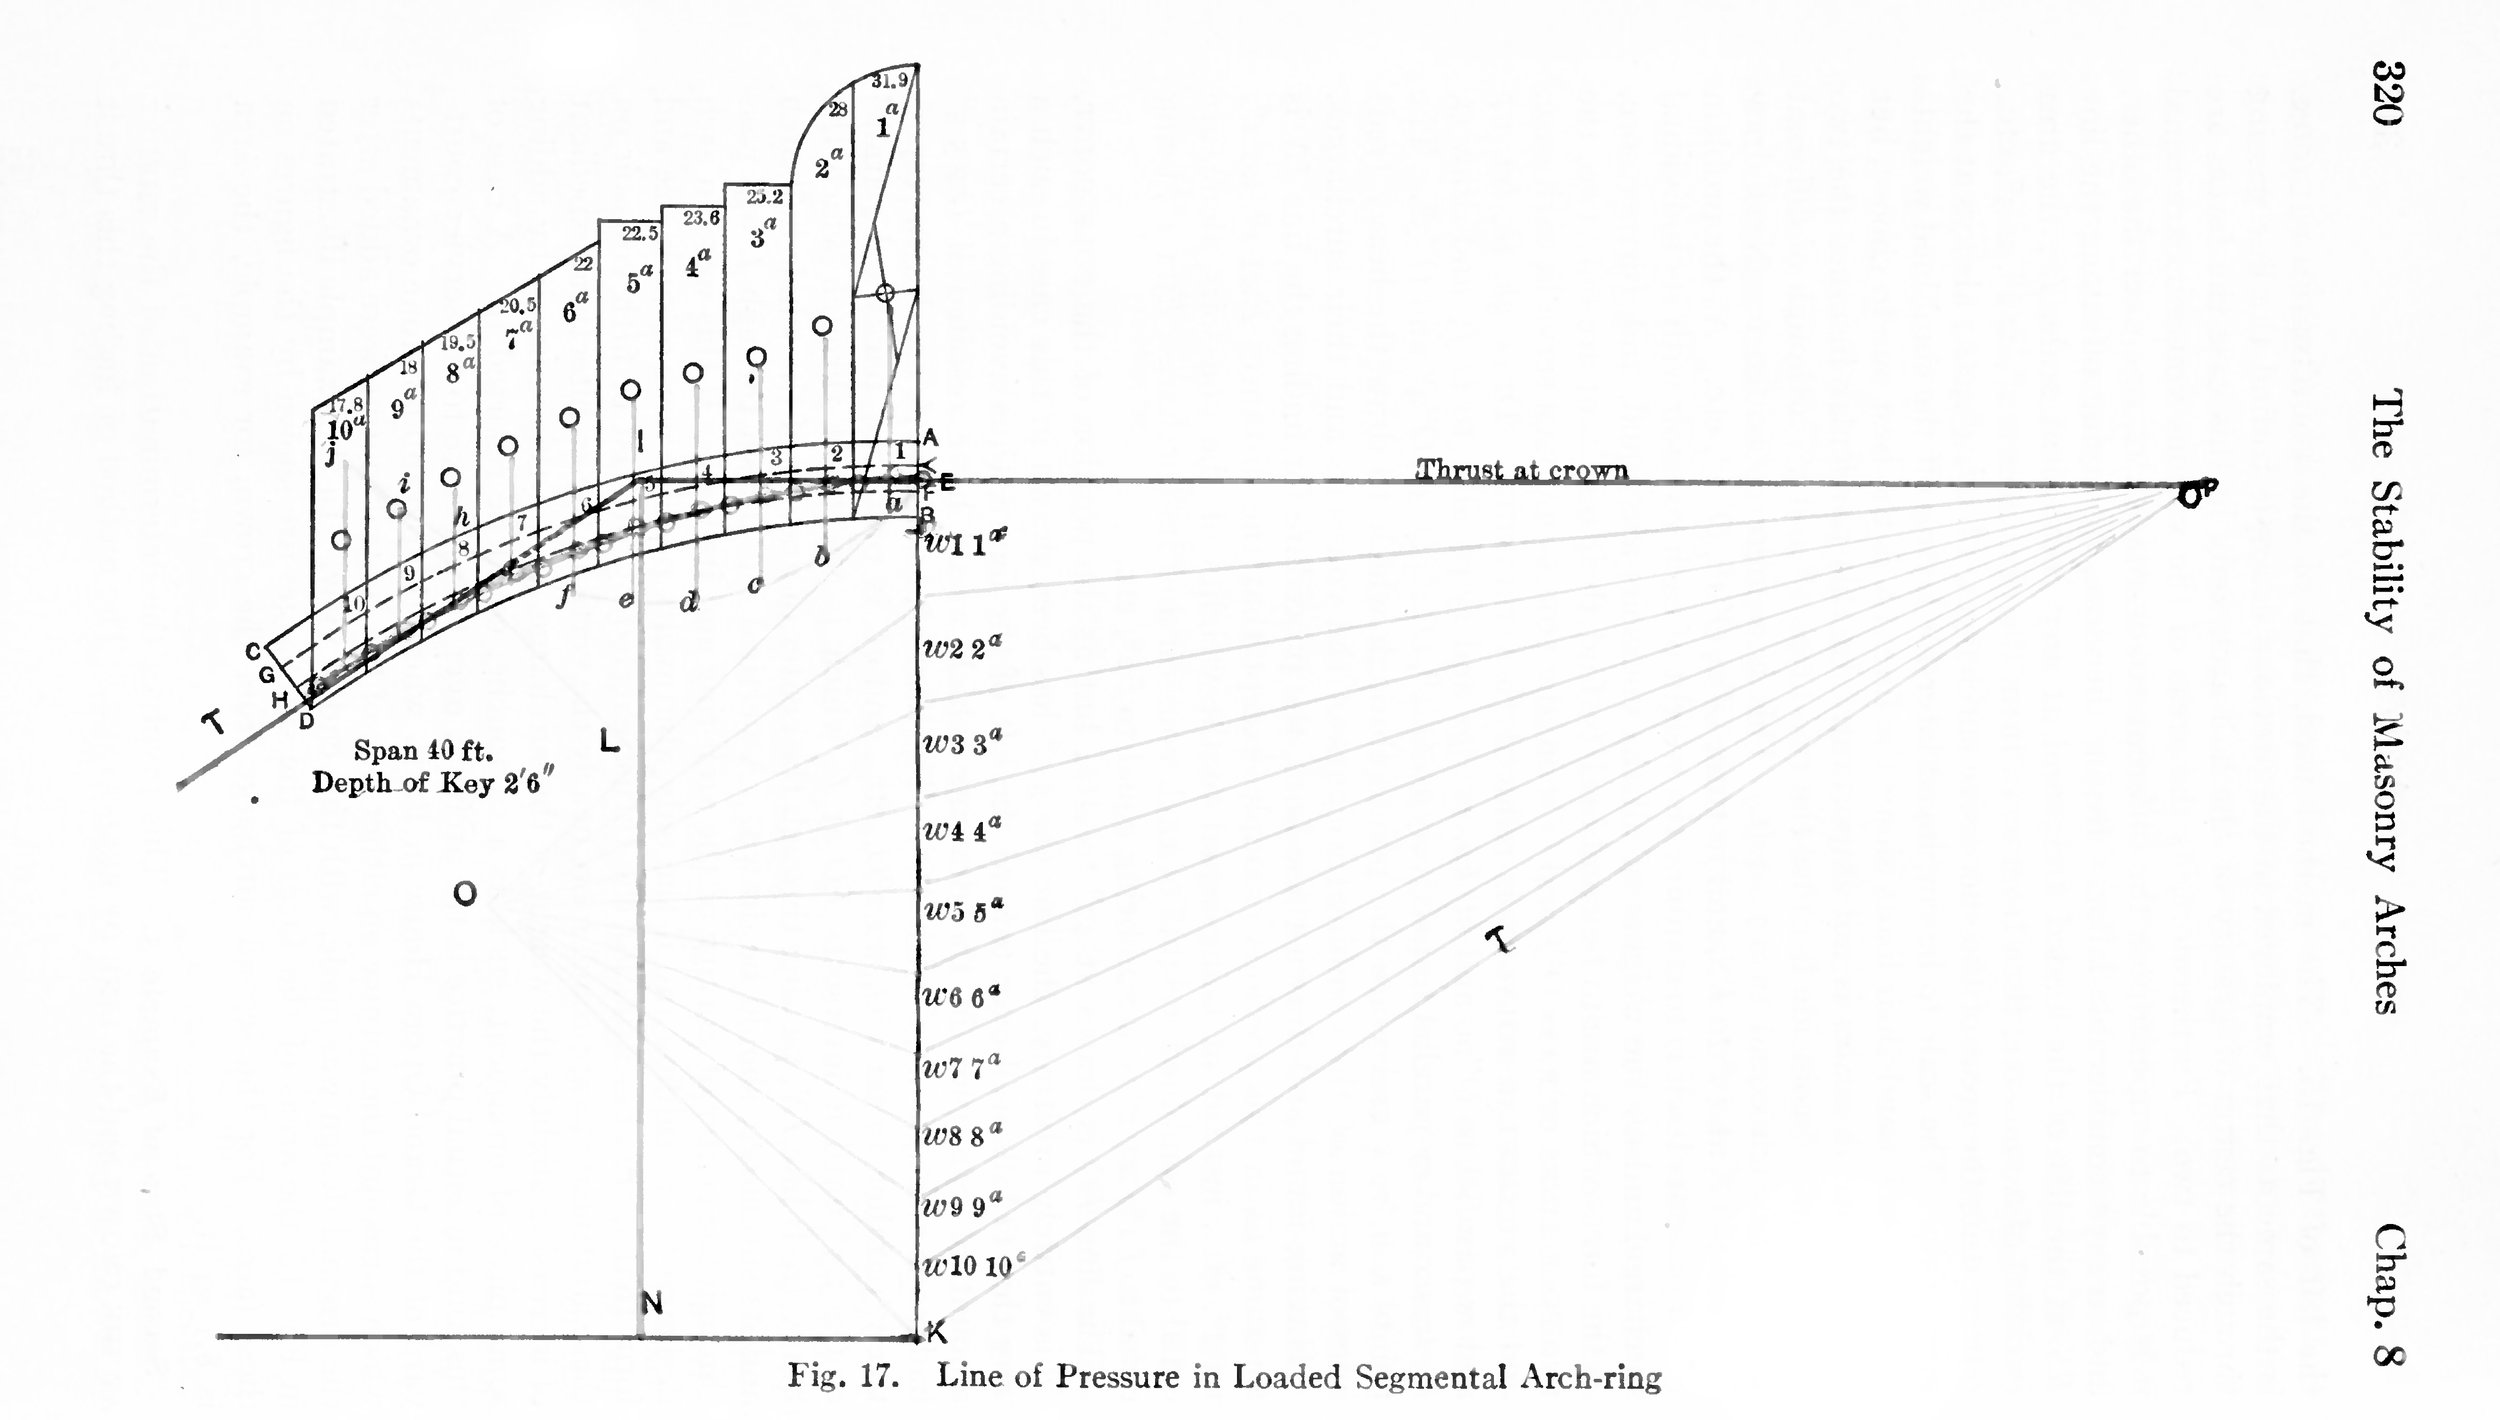 Technical Diagram of Structural Performance for Segmental Arch-ring. Image from Frank Kidder and Thomas Nolan,  Architects' and Builders' Pocket-Book,  16th Ed. (New York: John Wiley & Sons, 1916).